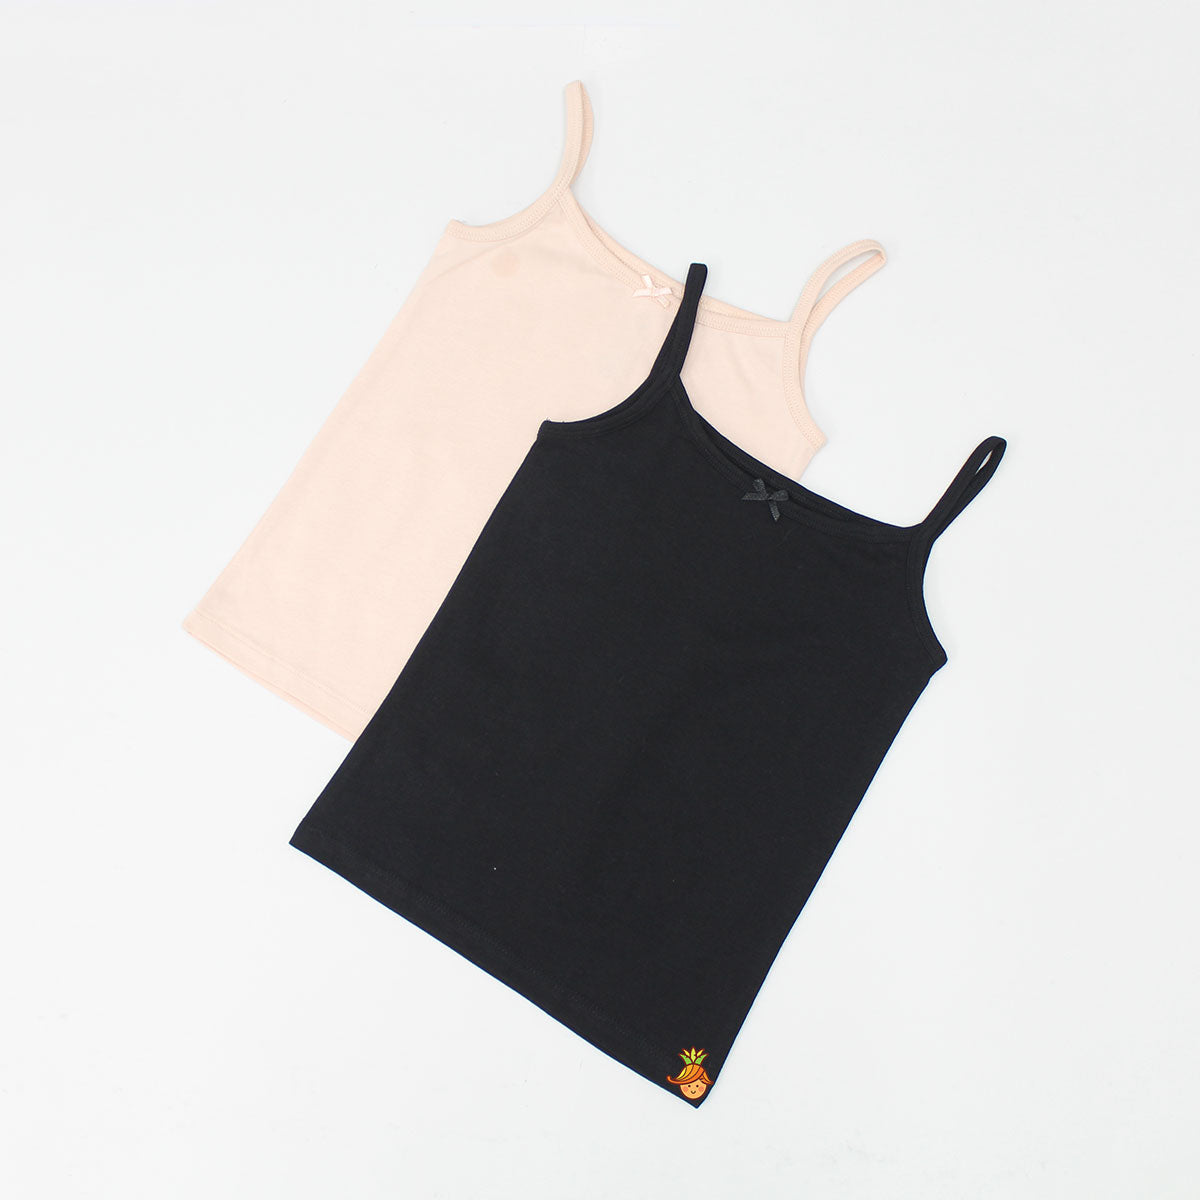 Black And Peach Vests - Set Of 2